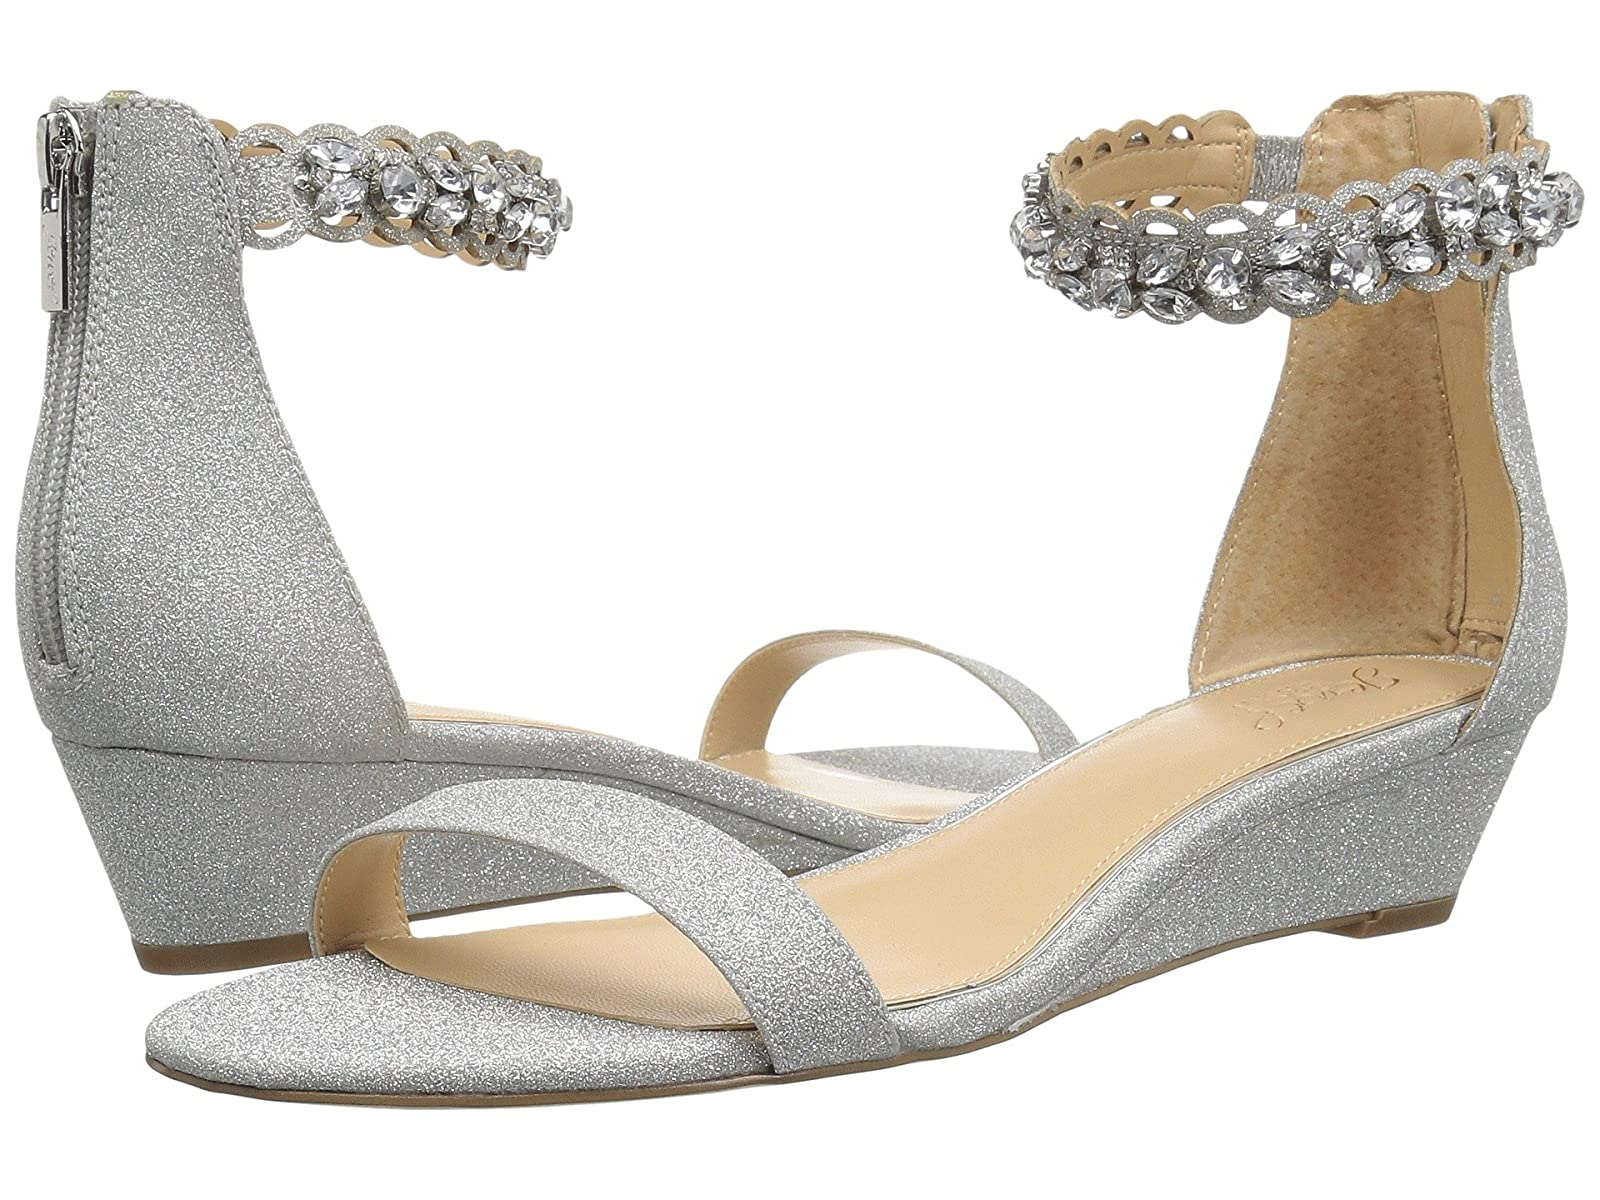 Jewel Badgley Mischka GingerAtmospheric grades have affordable shoes